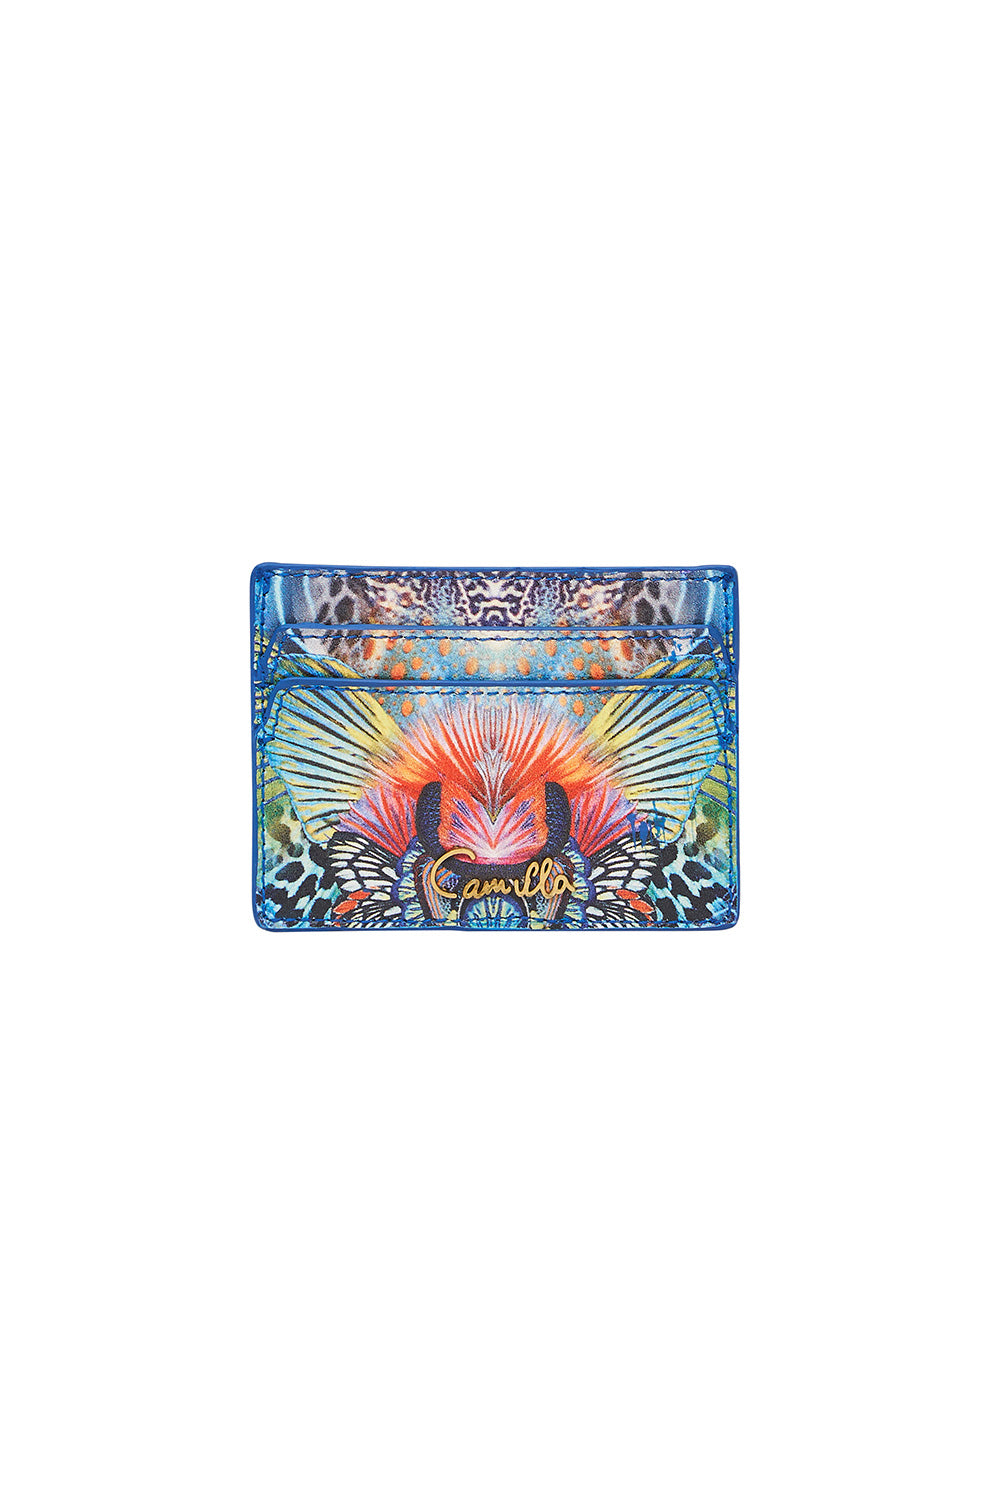 CARD HOLDER REEF WARRIOR